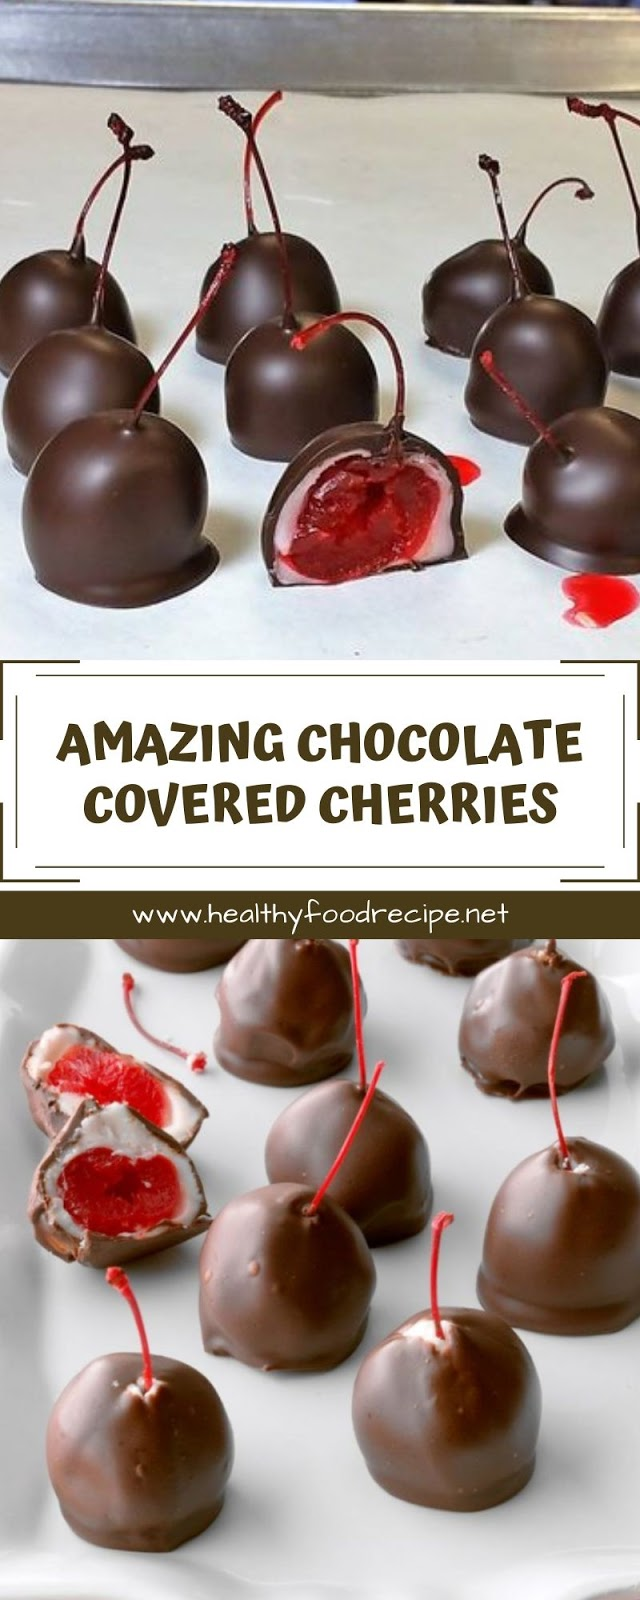 AMAZING CHOCOLATE COVERED CHERRIES